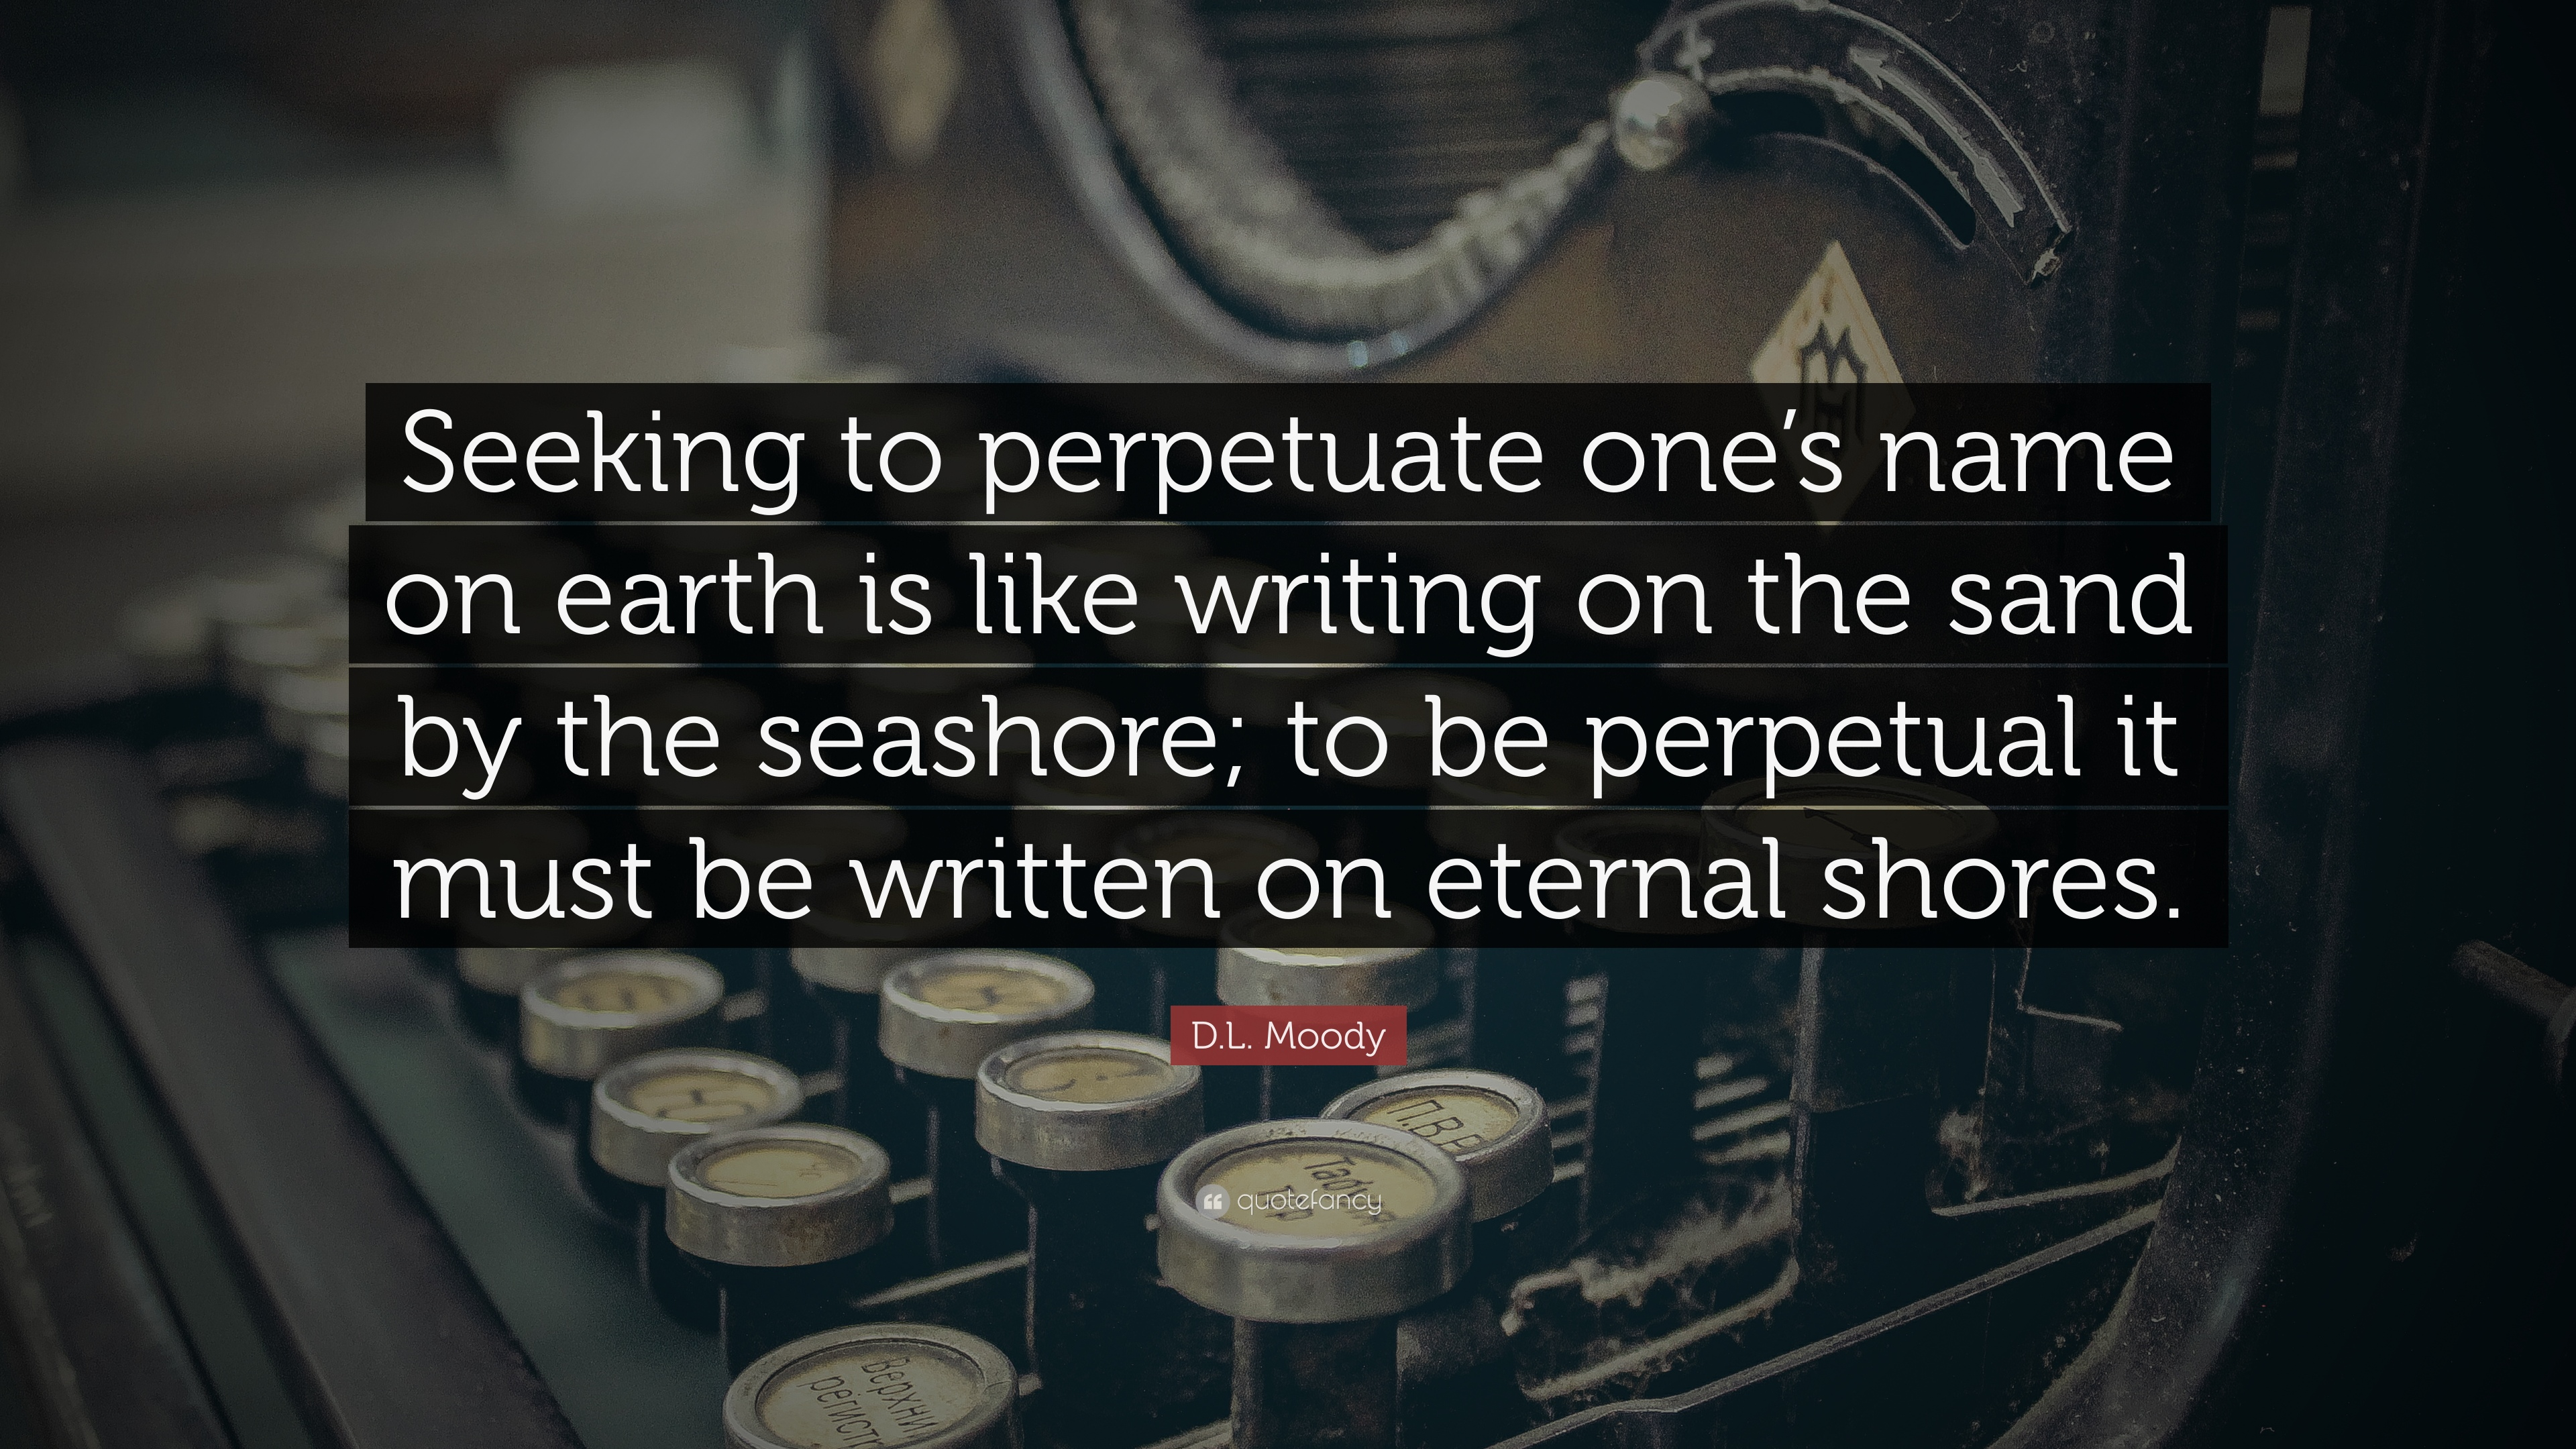 """D.L. Moody Quote: """"Seeking to perpetuate one's name on earth is like  writing on the sand by the seashore; to be perpetual it must be writte...""""  (7 wallpapers) - Quotefancy"""